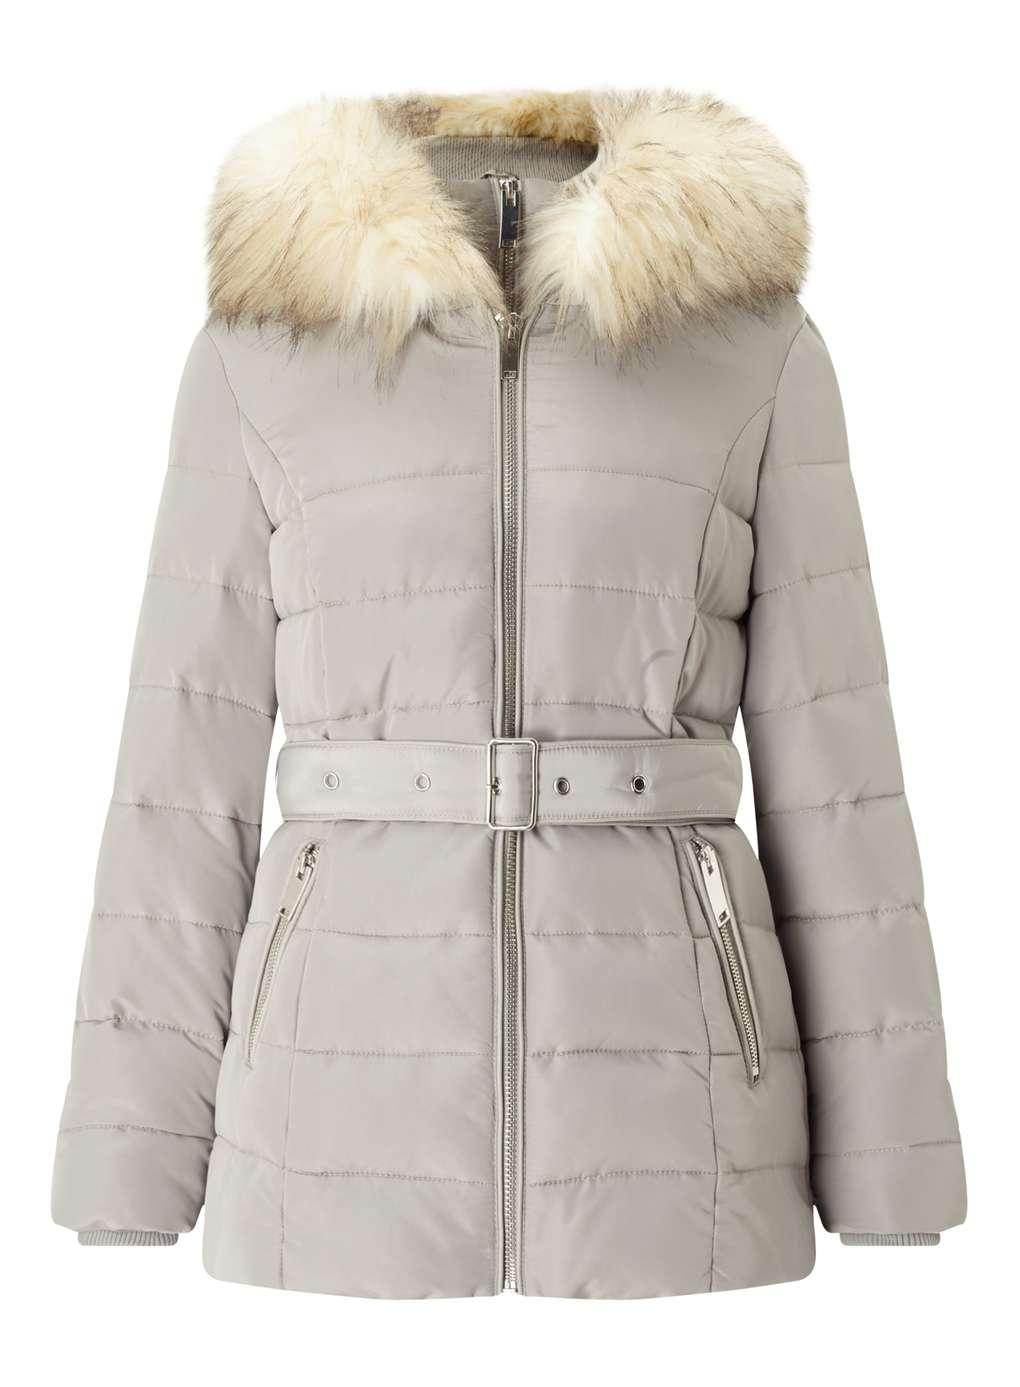 Miss Selfridge Silver Belted Puffer Coat In Metallic Lyst